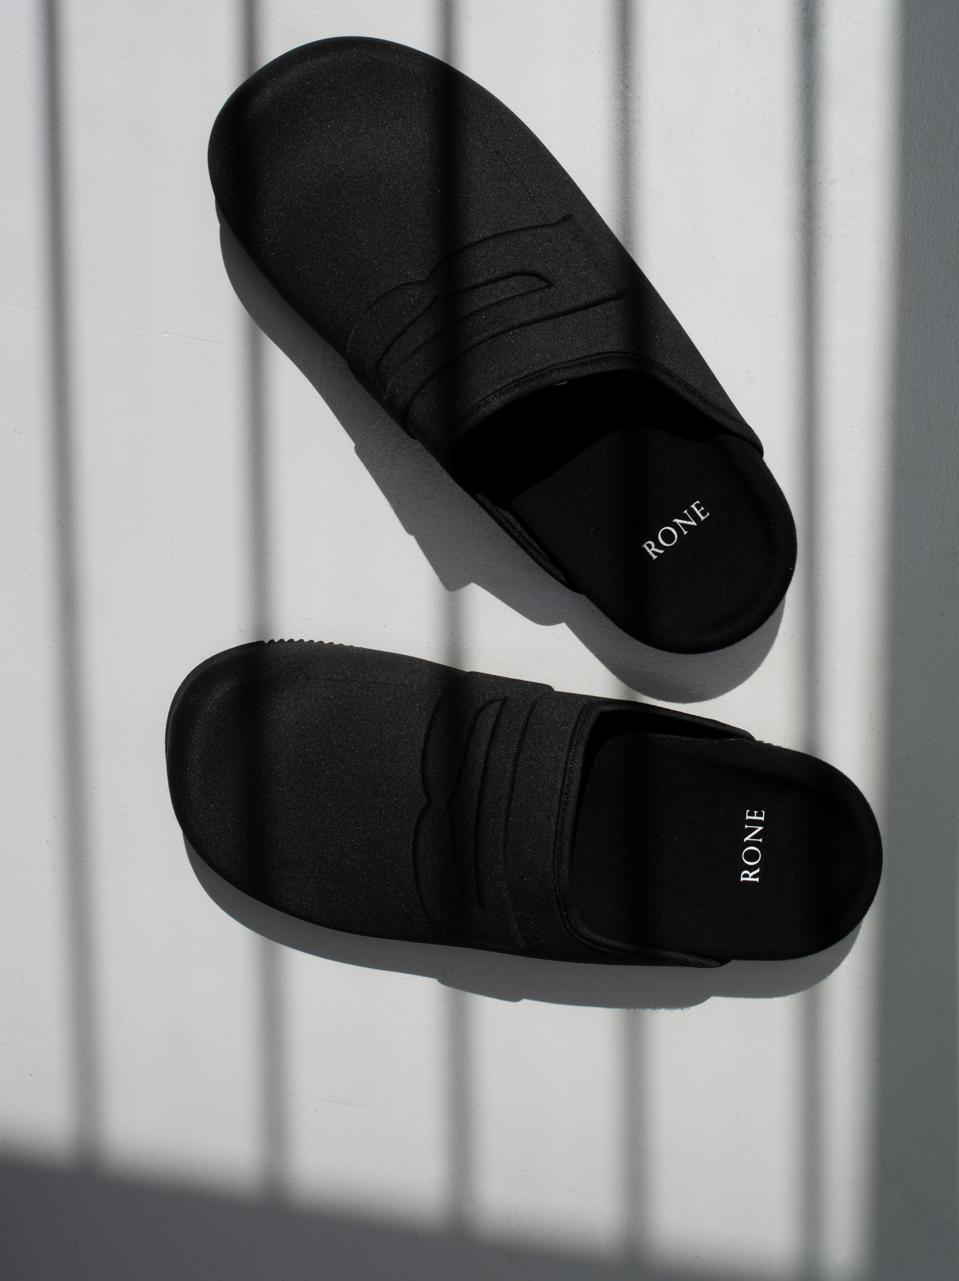 The Loafer Mule by Rone